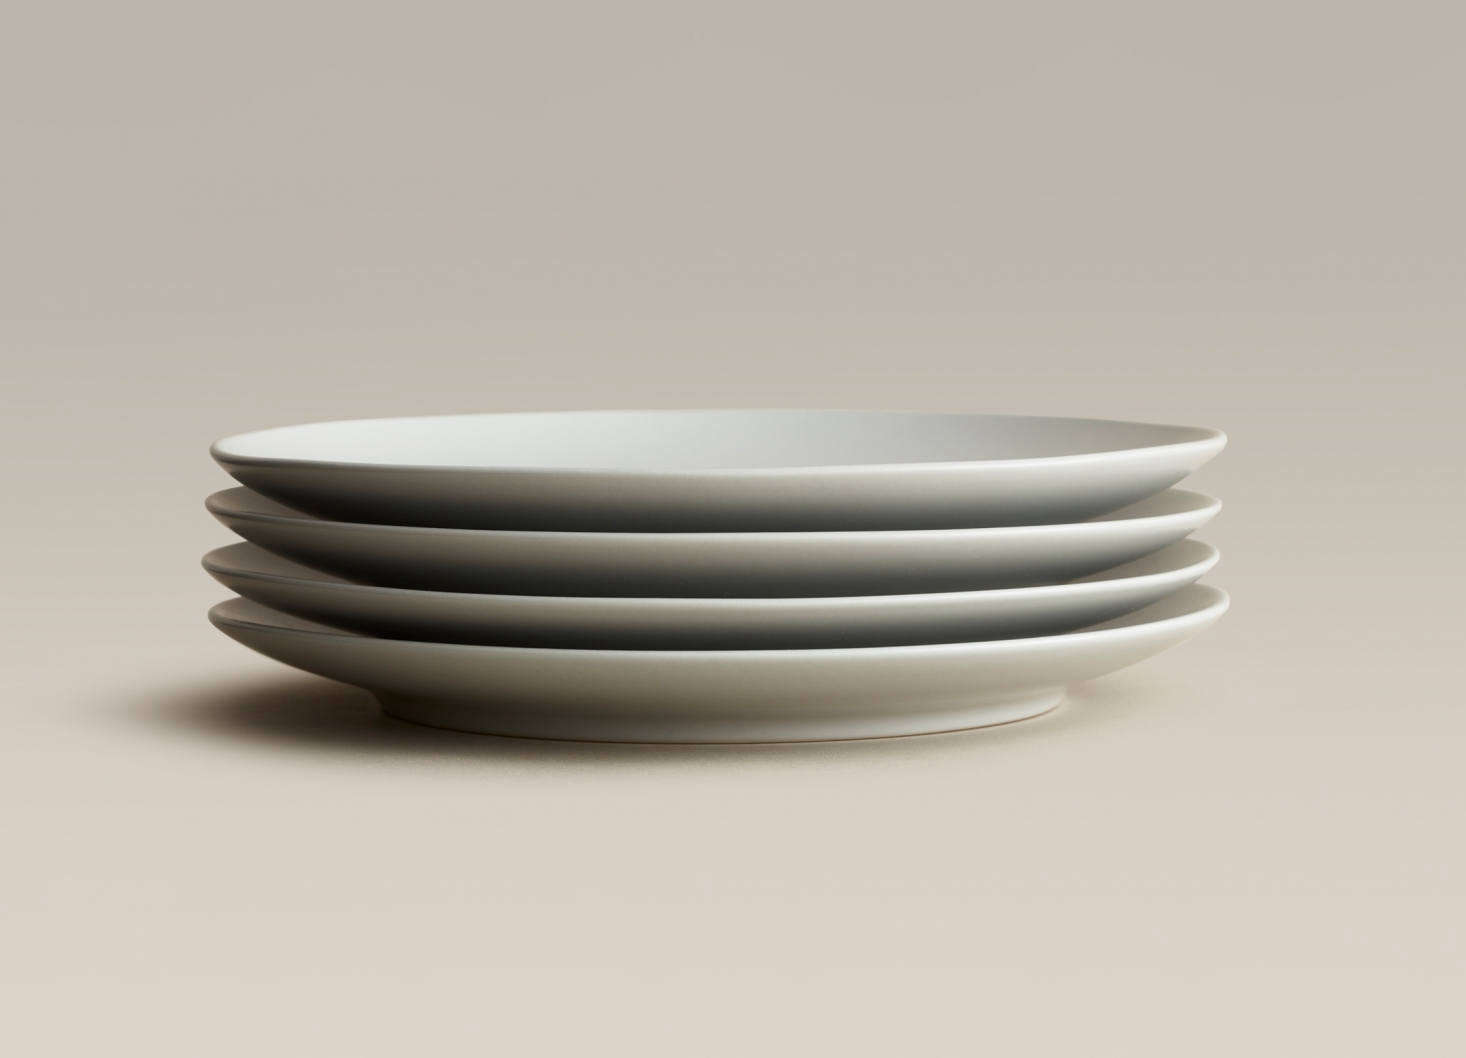 A stack of four Small Plates, suitable for salad and dessert, in Fog; $44 for a set of four.